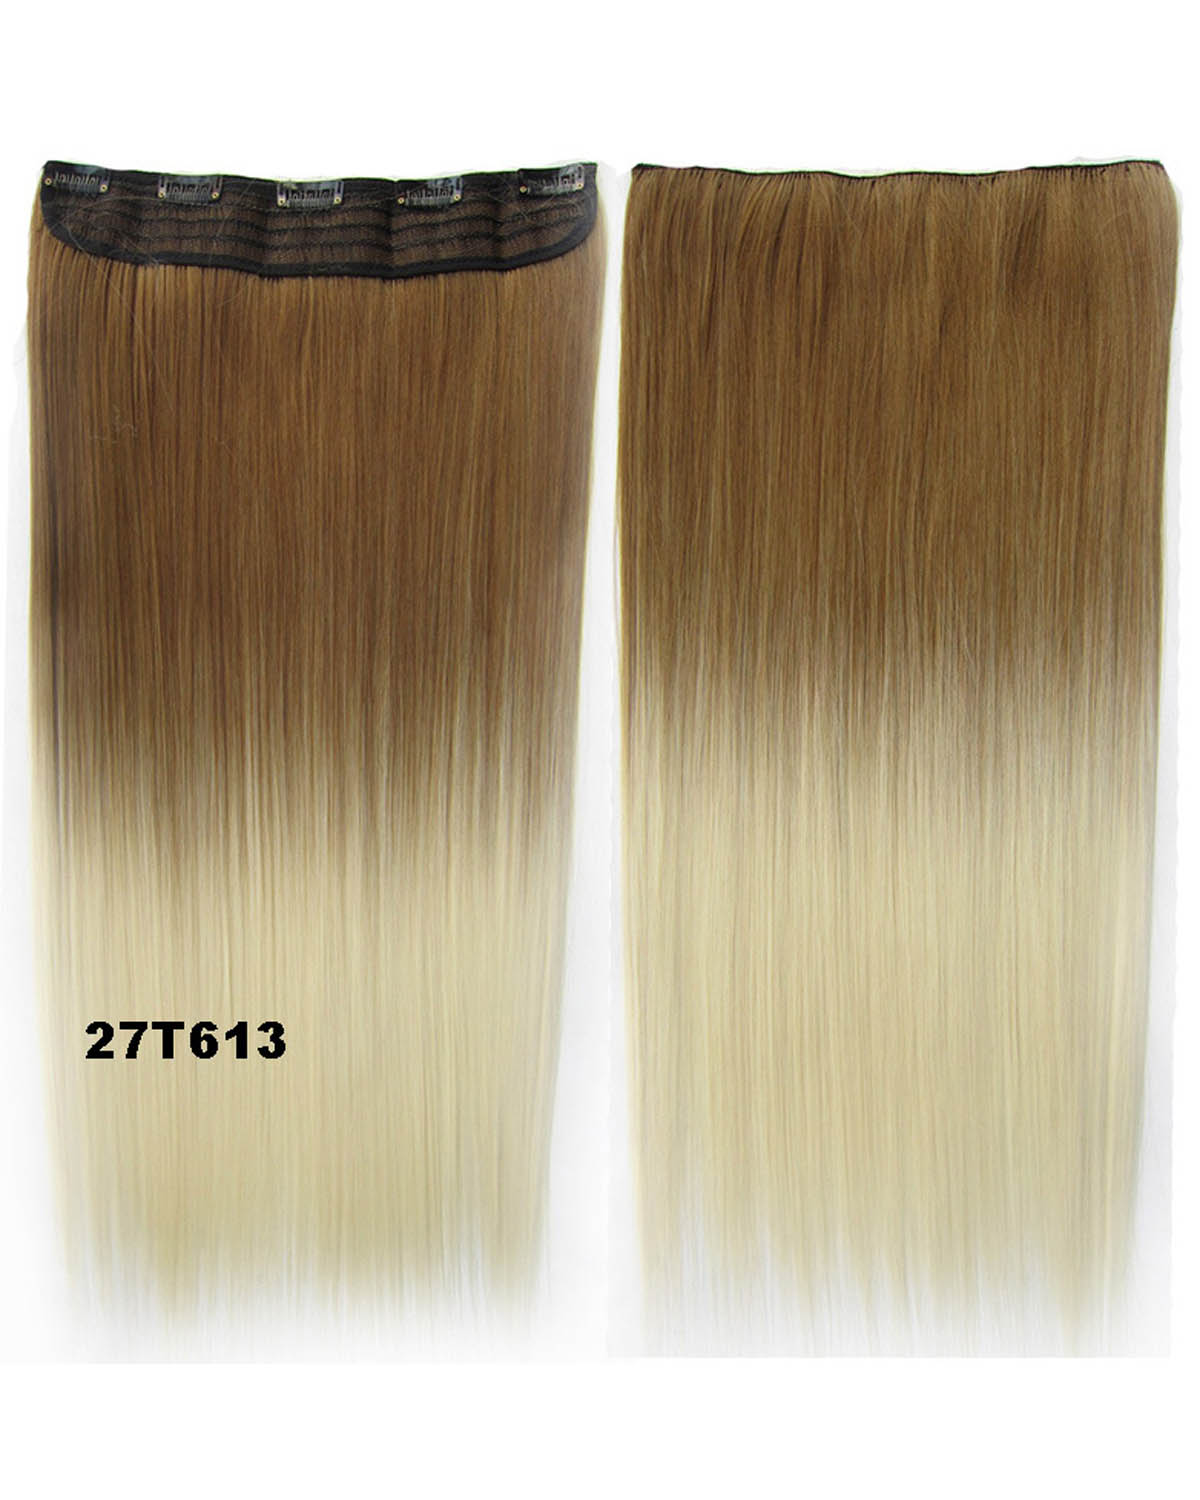 24 Inch Female Bright and Long Straight One Piece 5 Clips Clip in Synthetic Hair Extension Ombre27T613